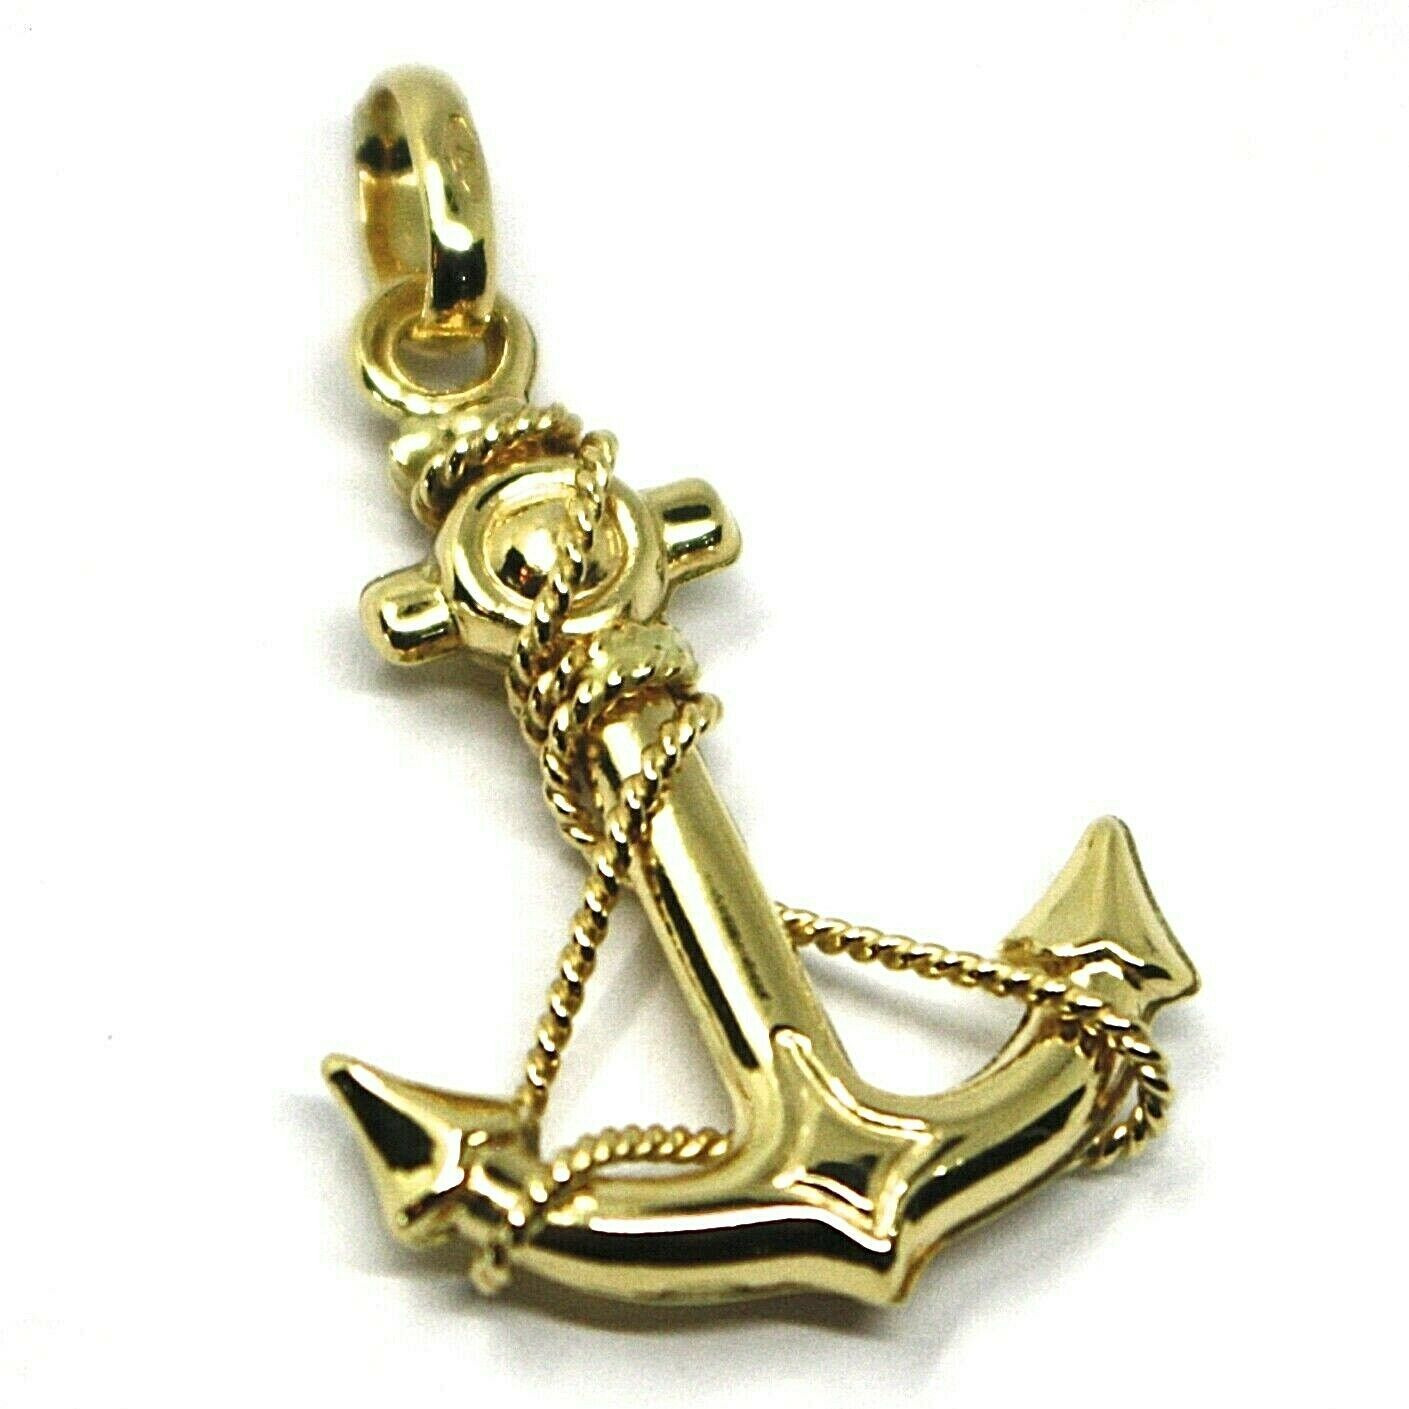 18K YELLOW GOLD NAUTICAL BIG ANCHOR ROUNDED PENDANT, LENGHT 3 CM, 1.2""